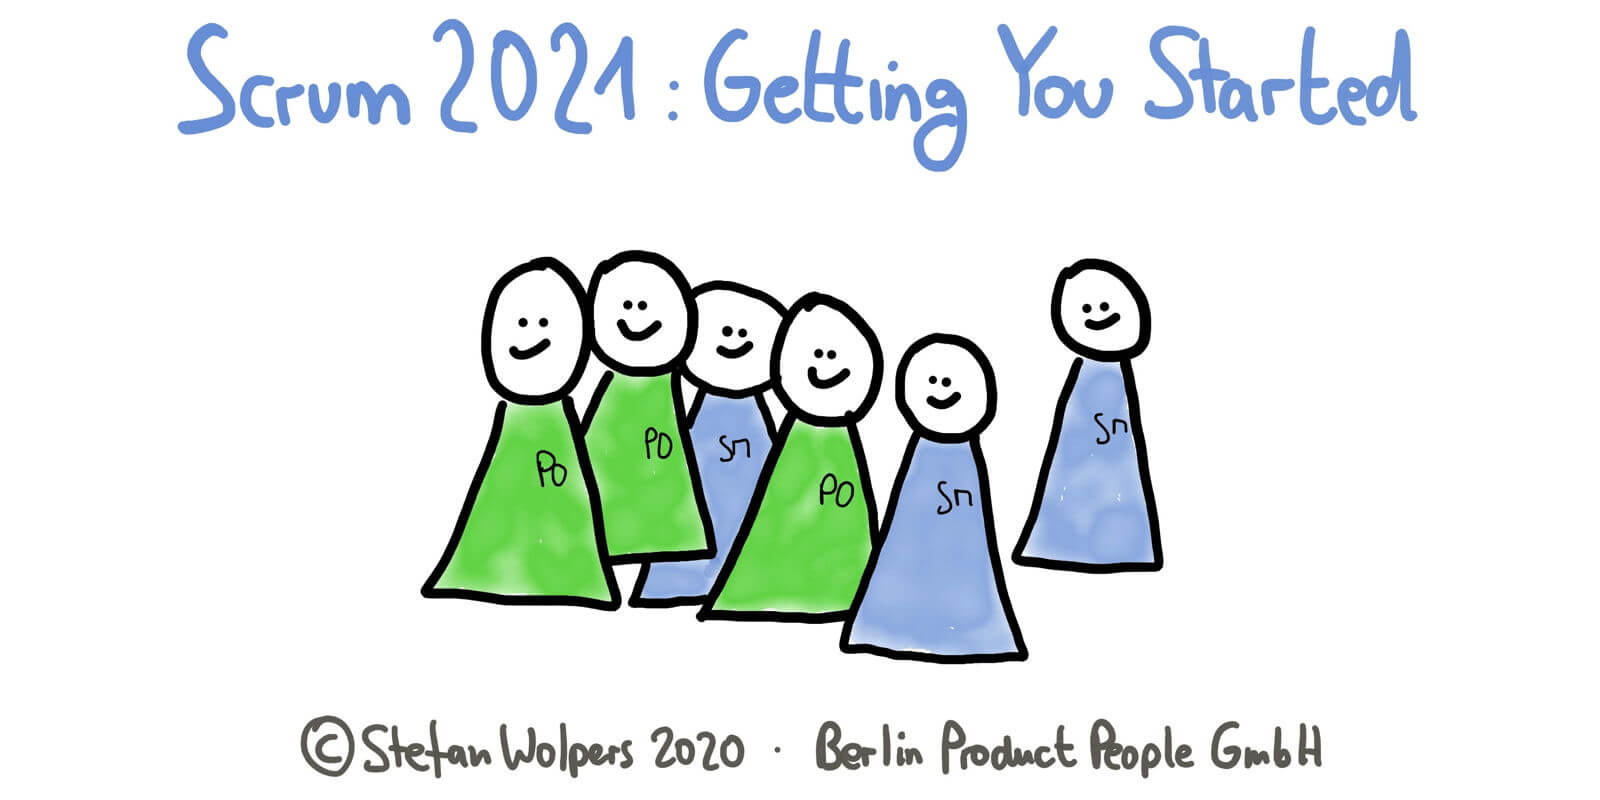 TL;DR: Scrum 2021 — Getting You Started as Scrum Master or Product Owner